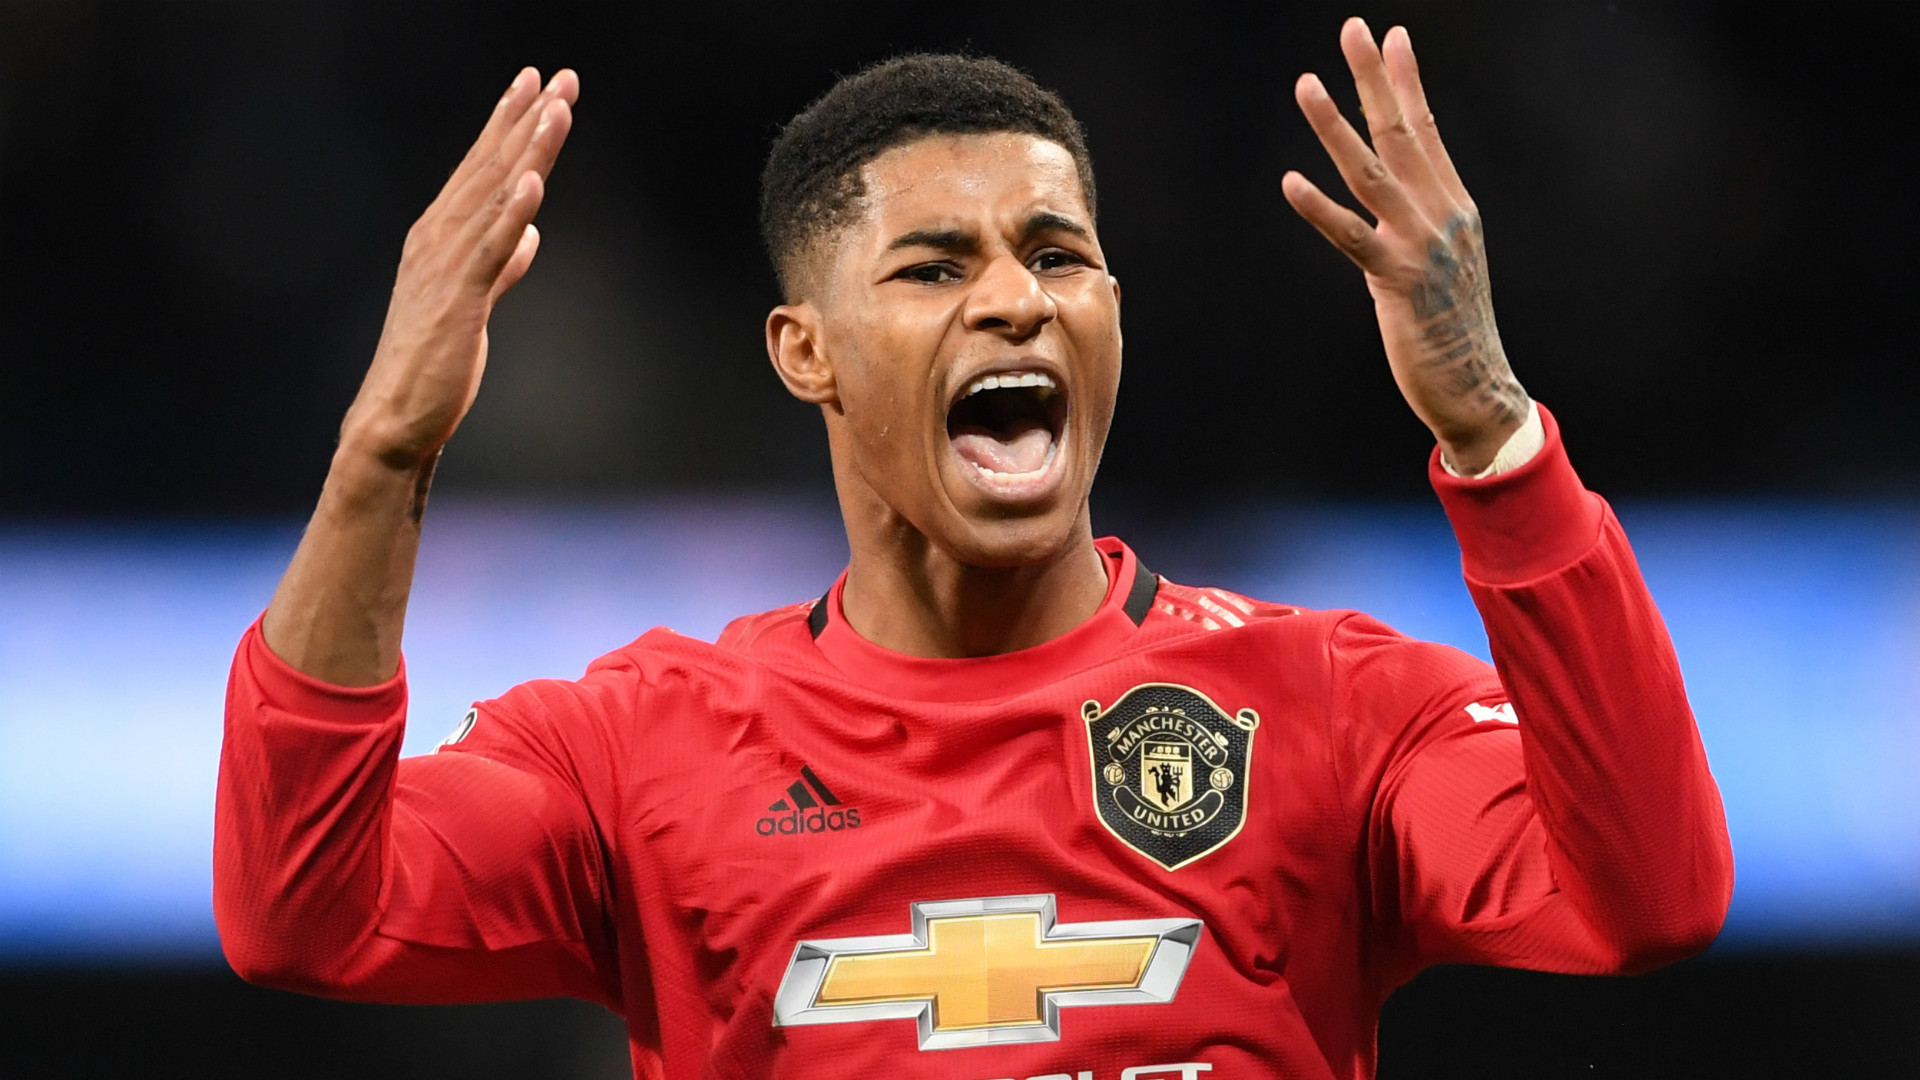 'Right now, we'd have any trophy' - Man Utd targeting cup treble, says Rashford